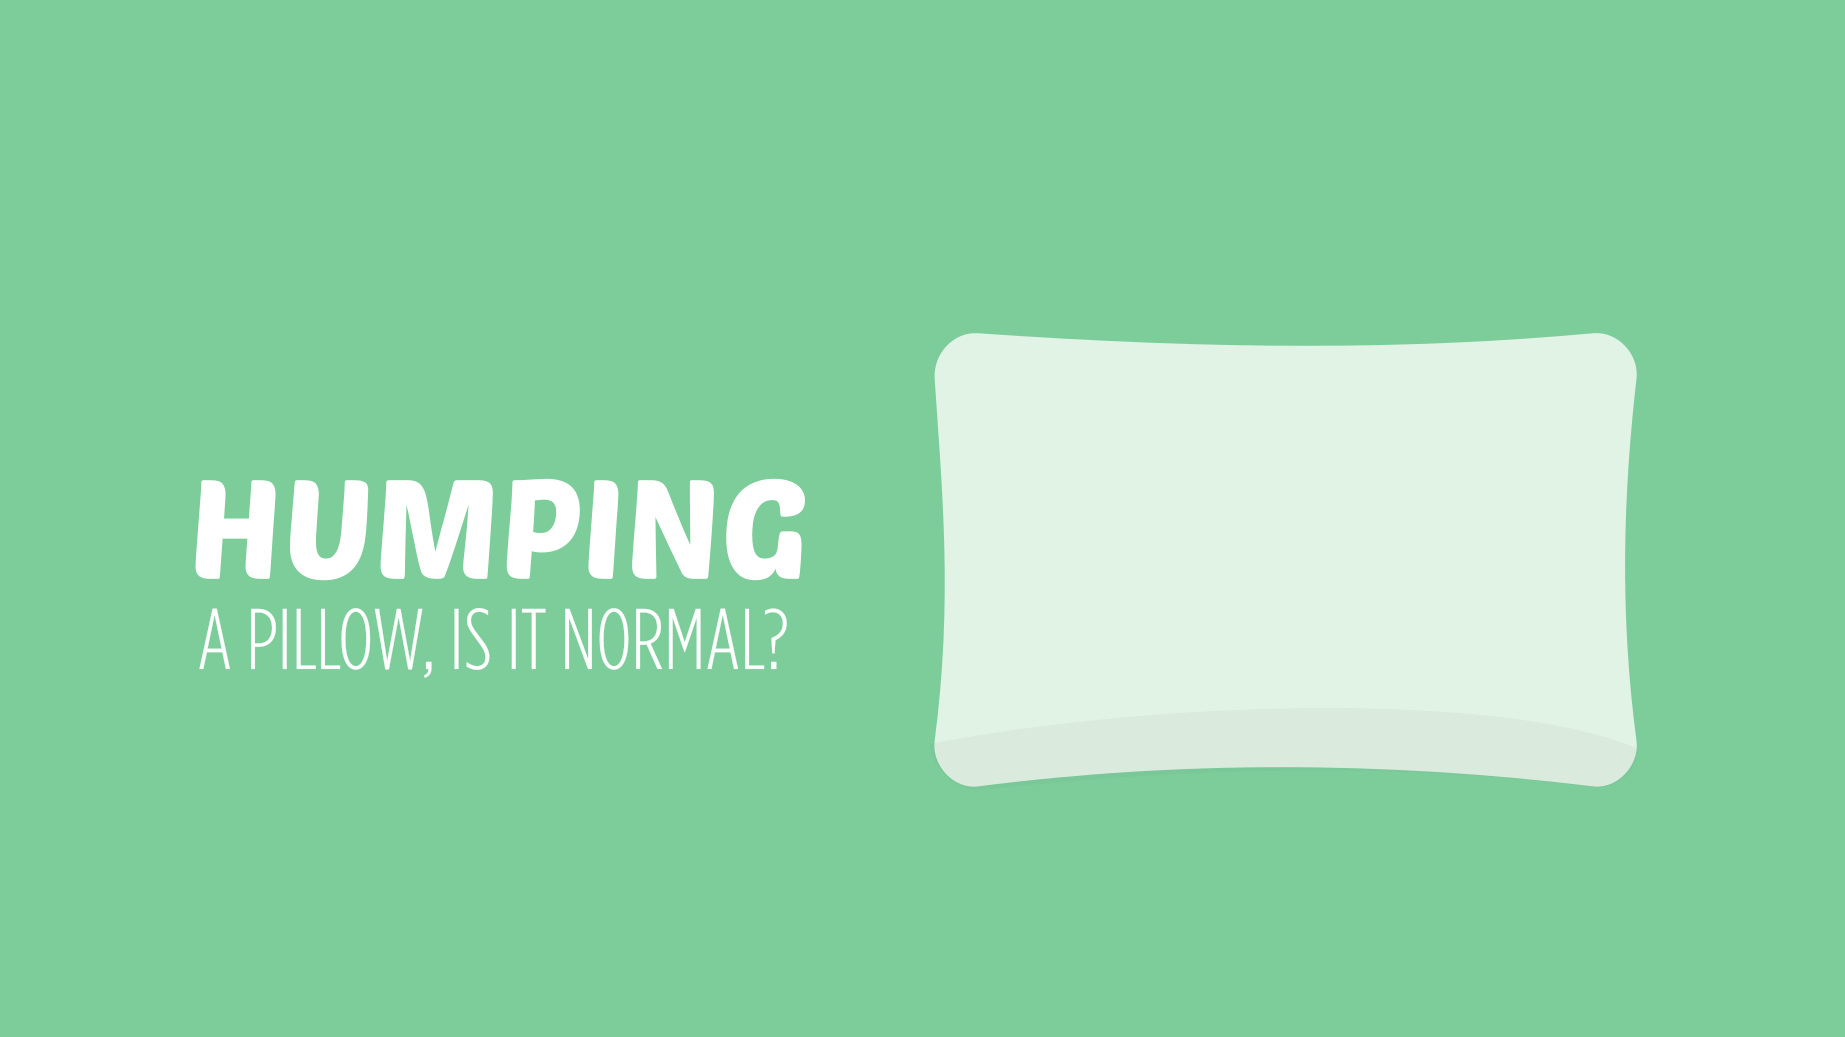 Humping a Pillow, Is It Normal?